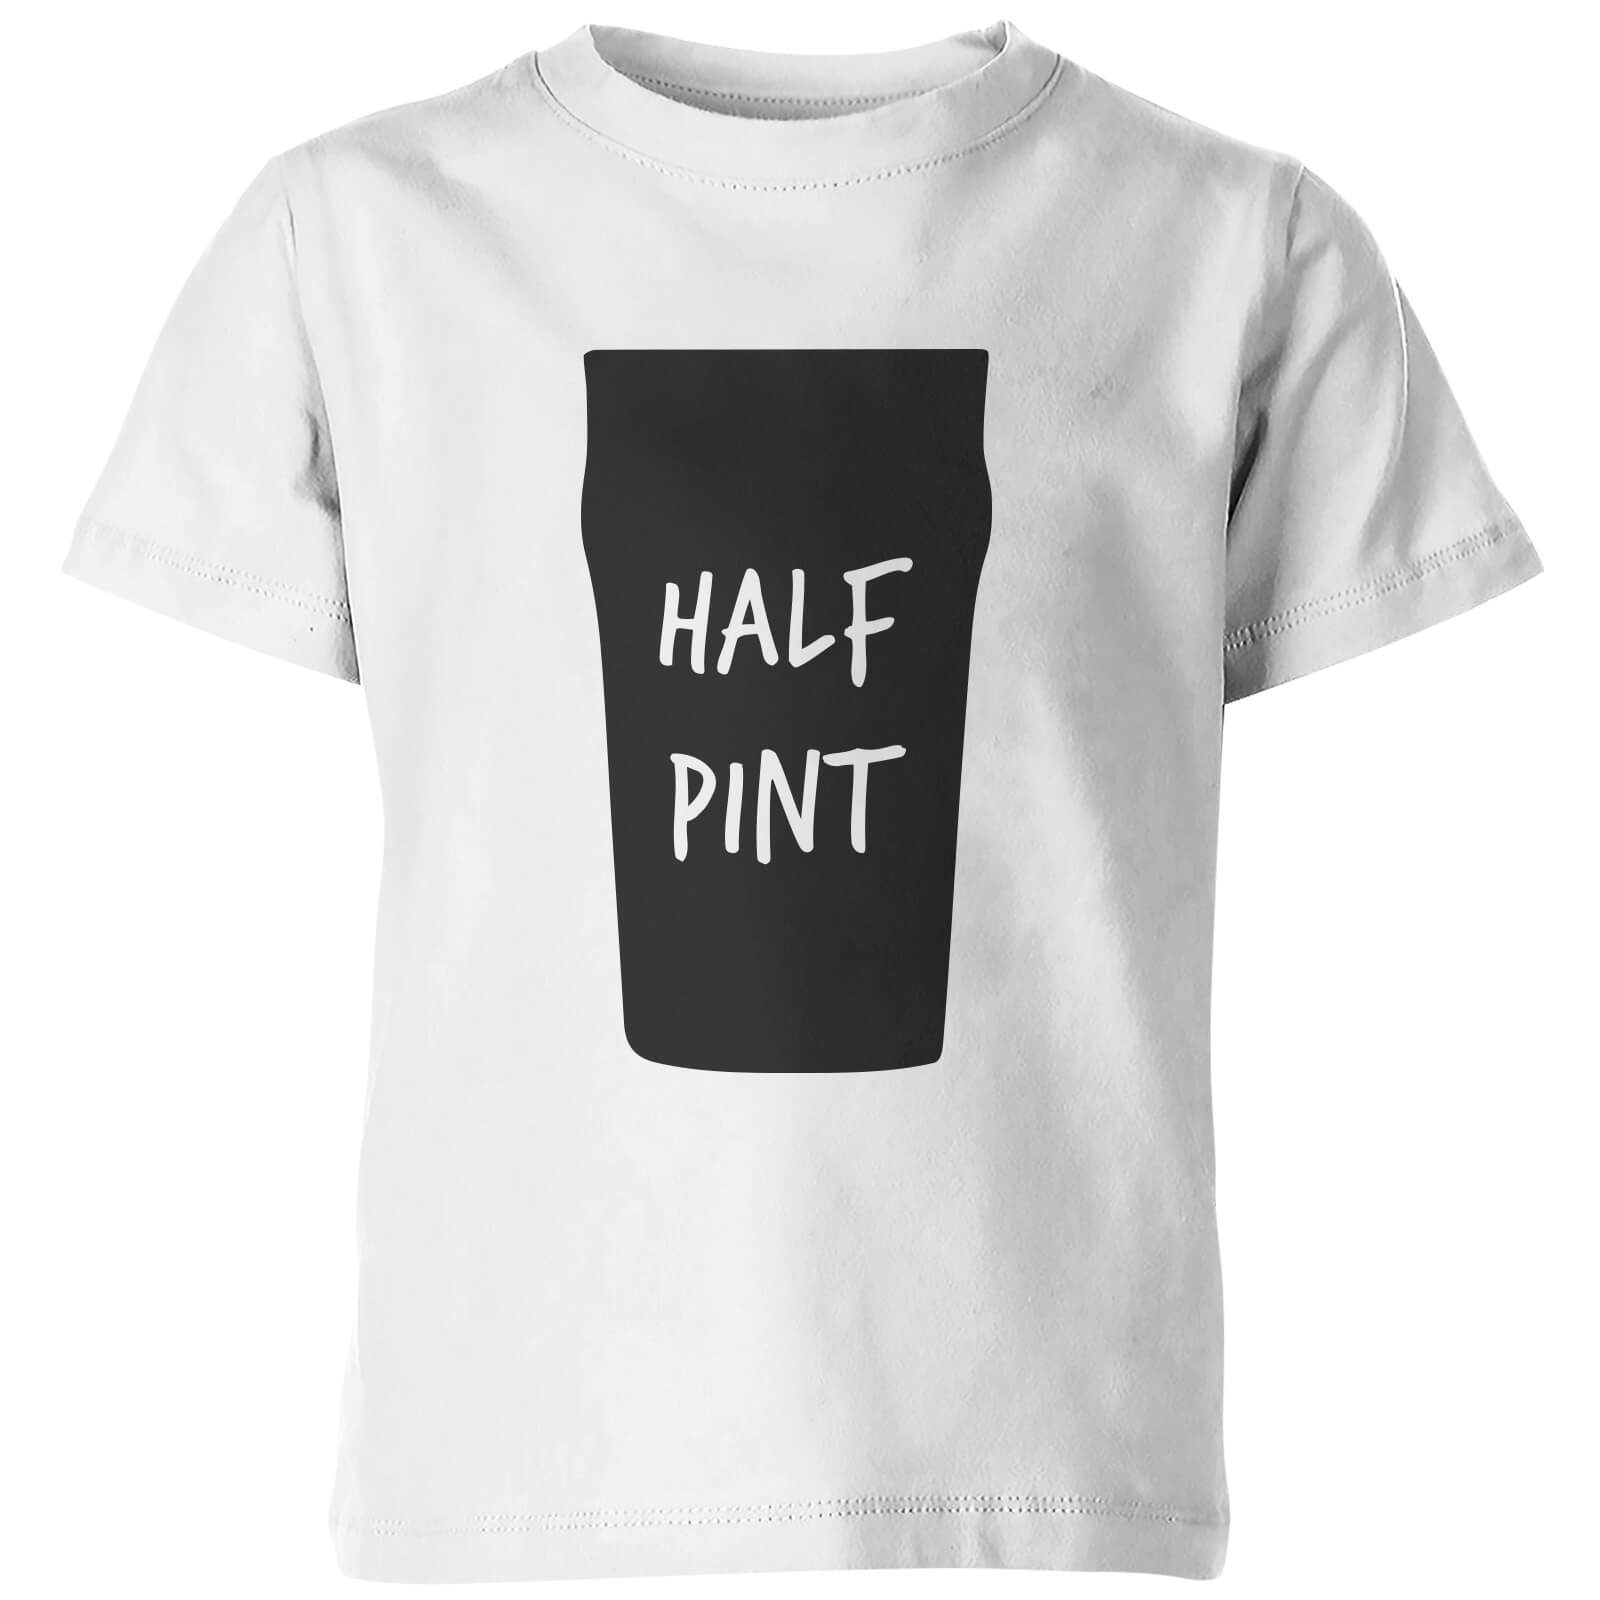 My Little Rascal Kids Half Pint White T-Shirt